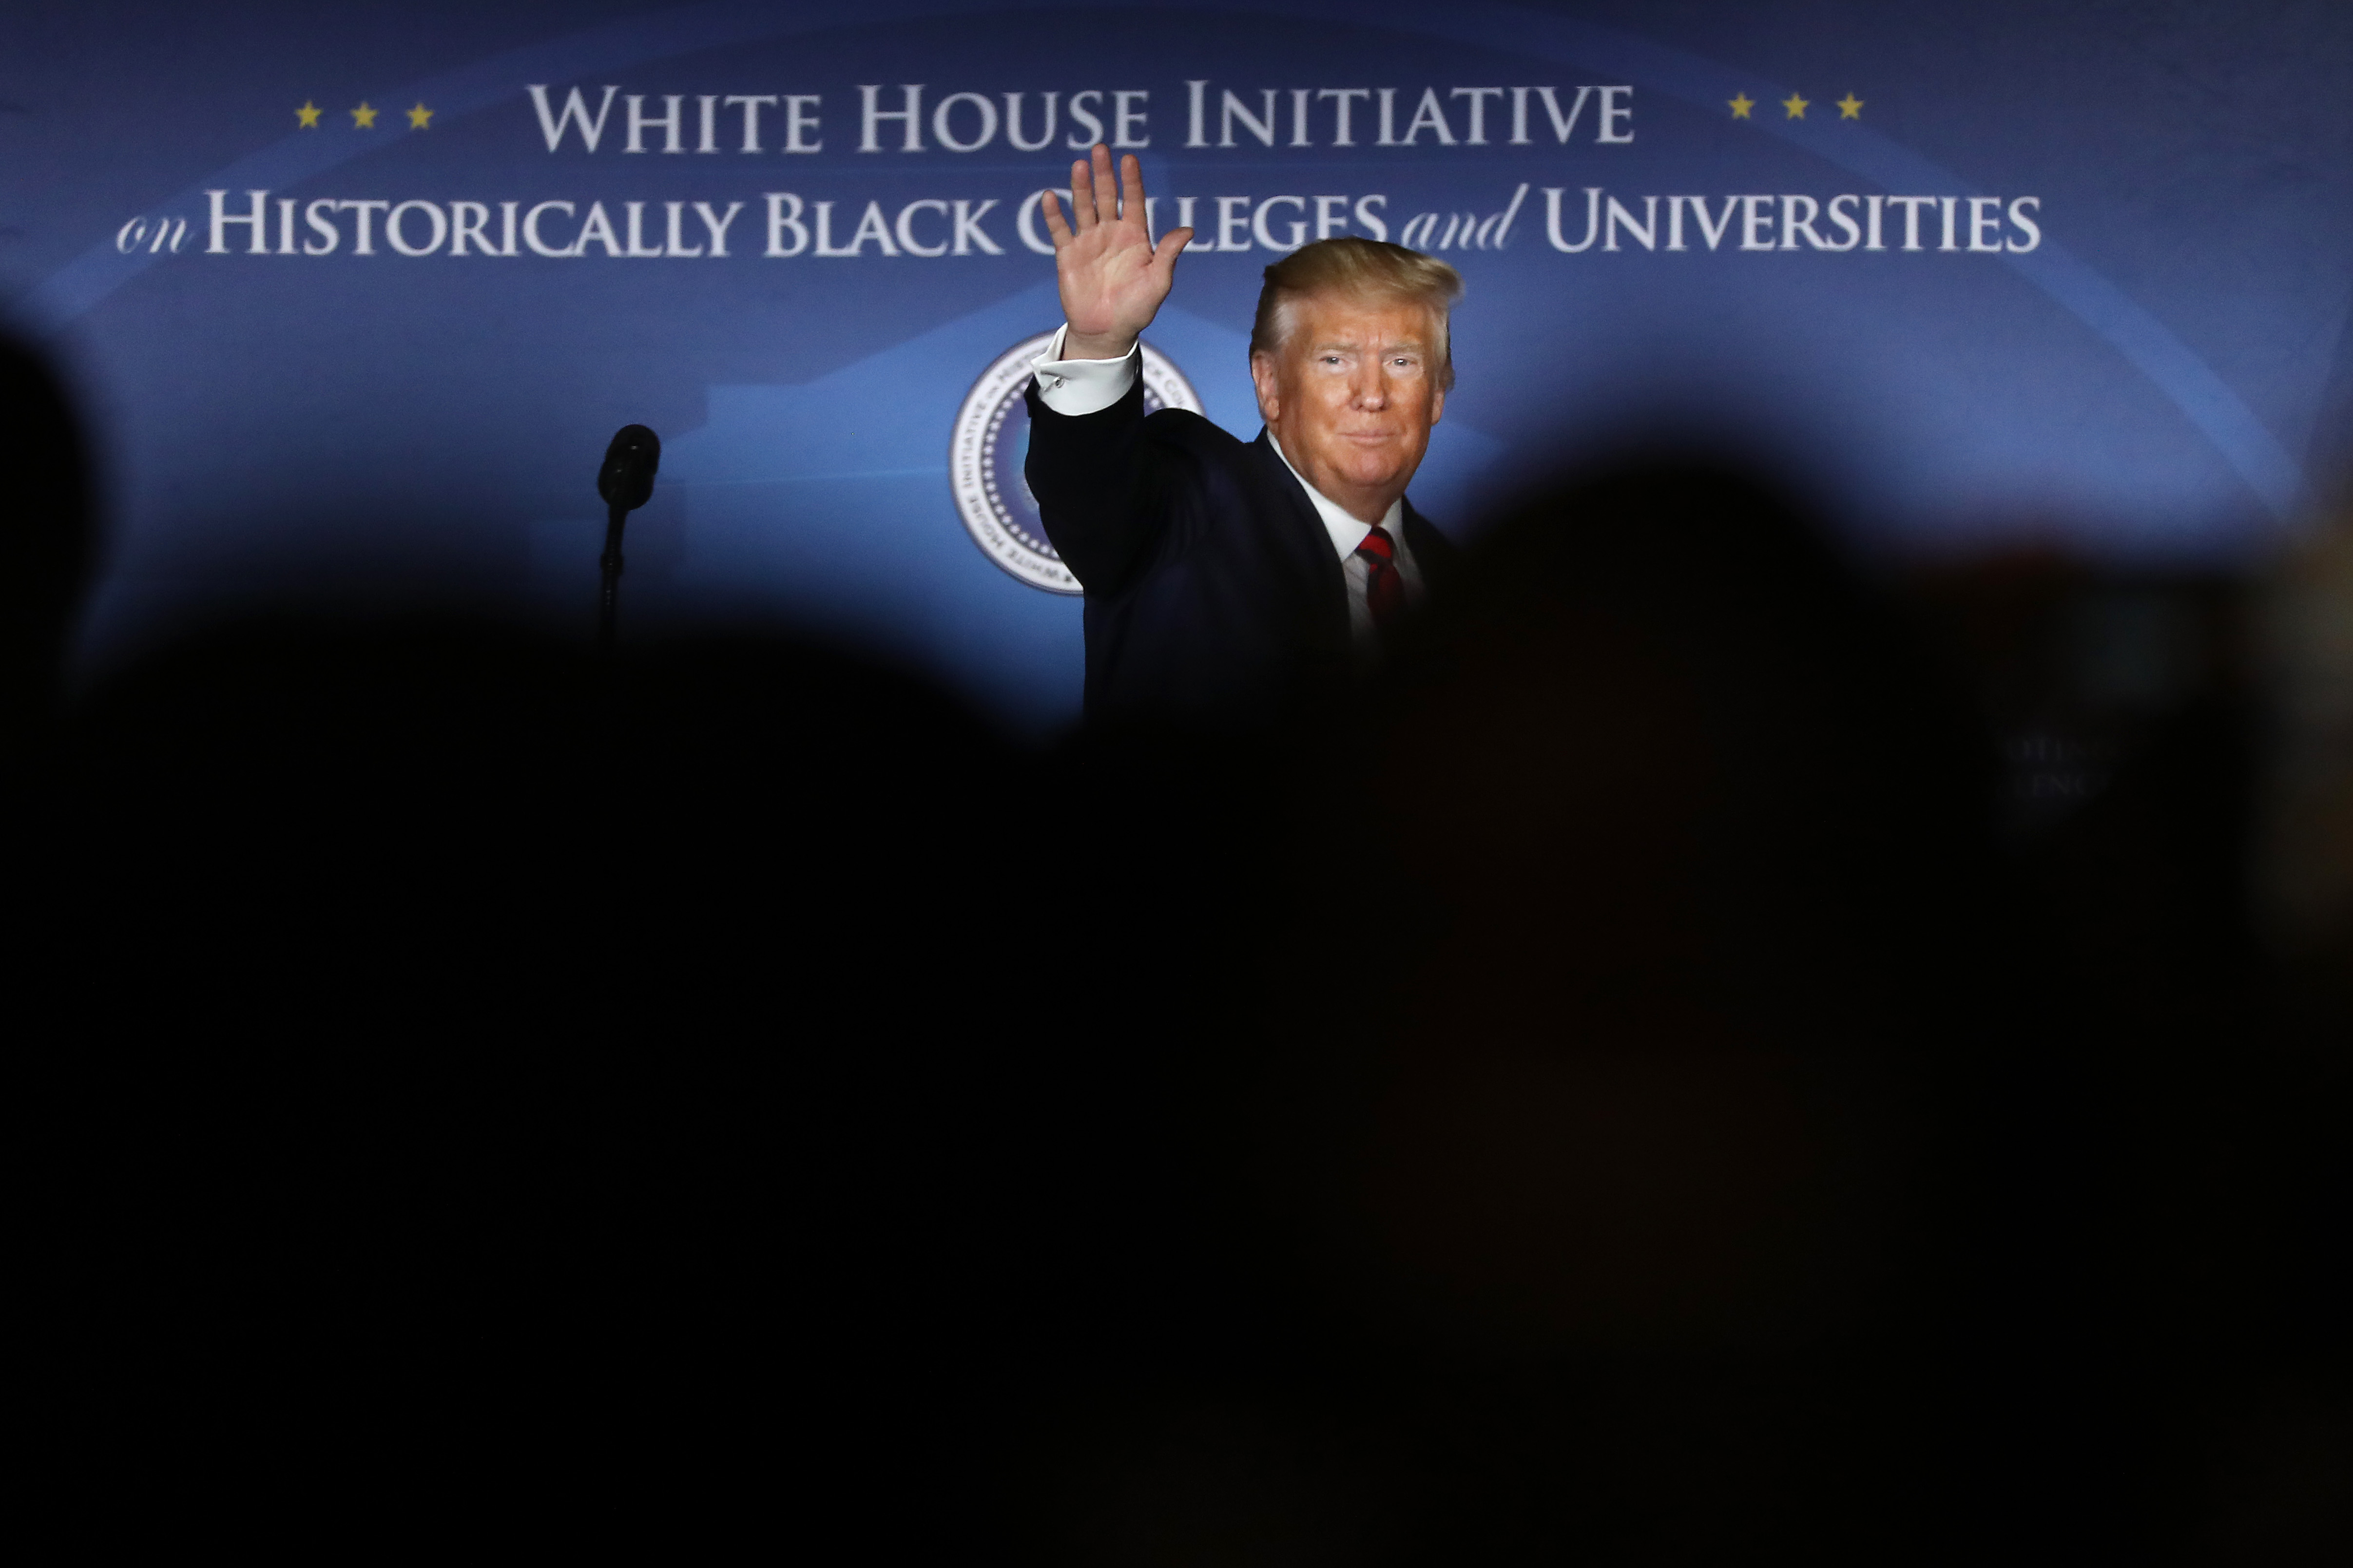 """President Donald Trump waves from the stage in front of a backdrop the reads, """"White House Initiative: Historically Black Colleges and Universities."""""""